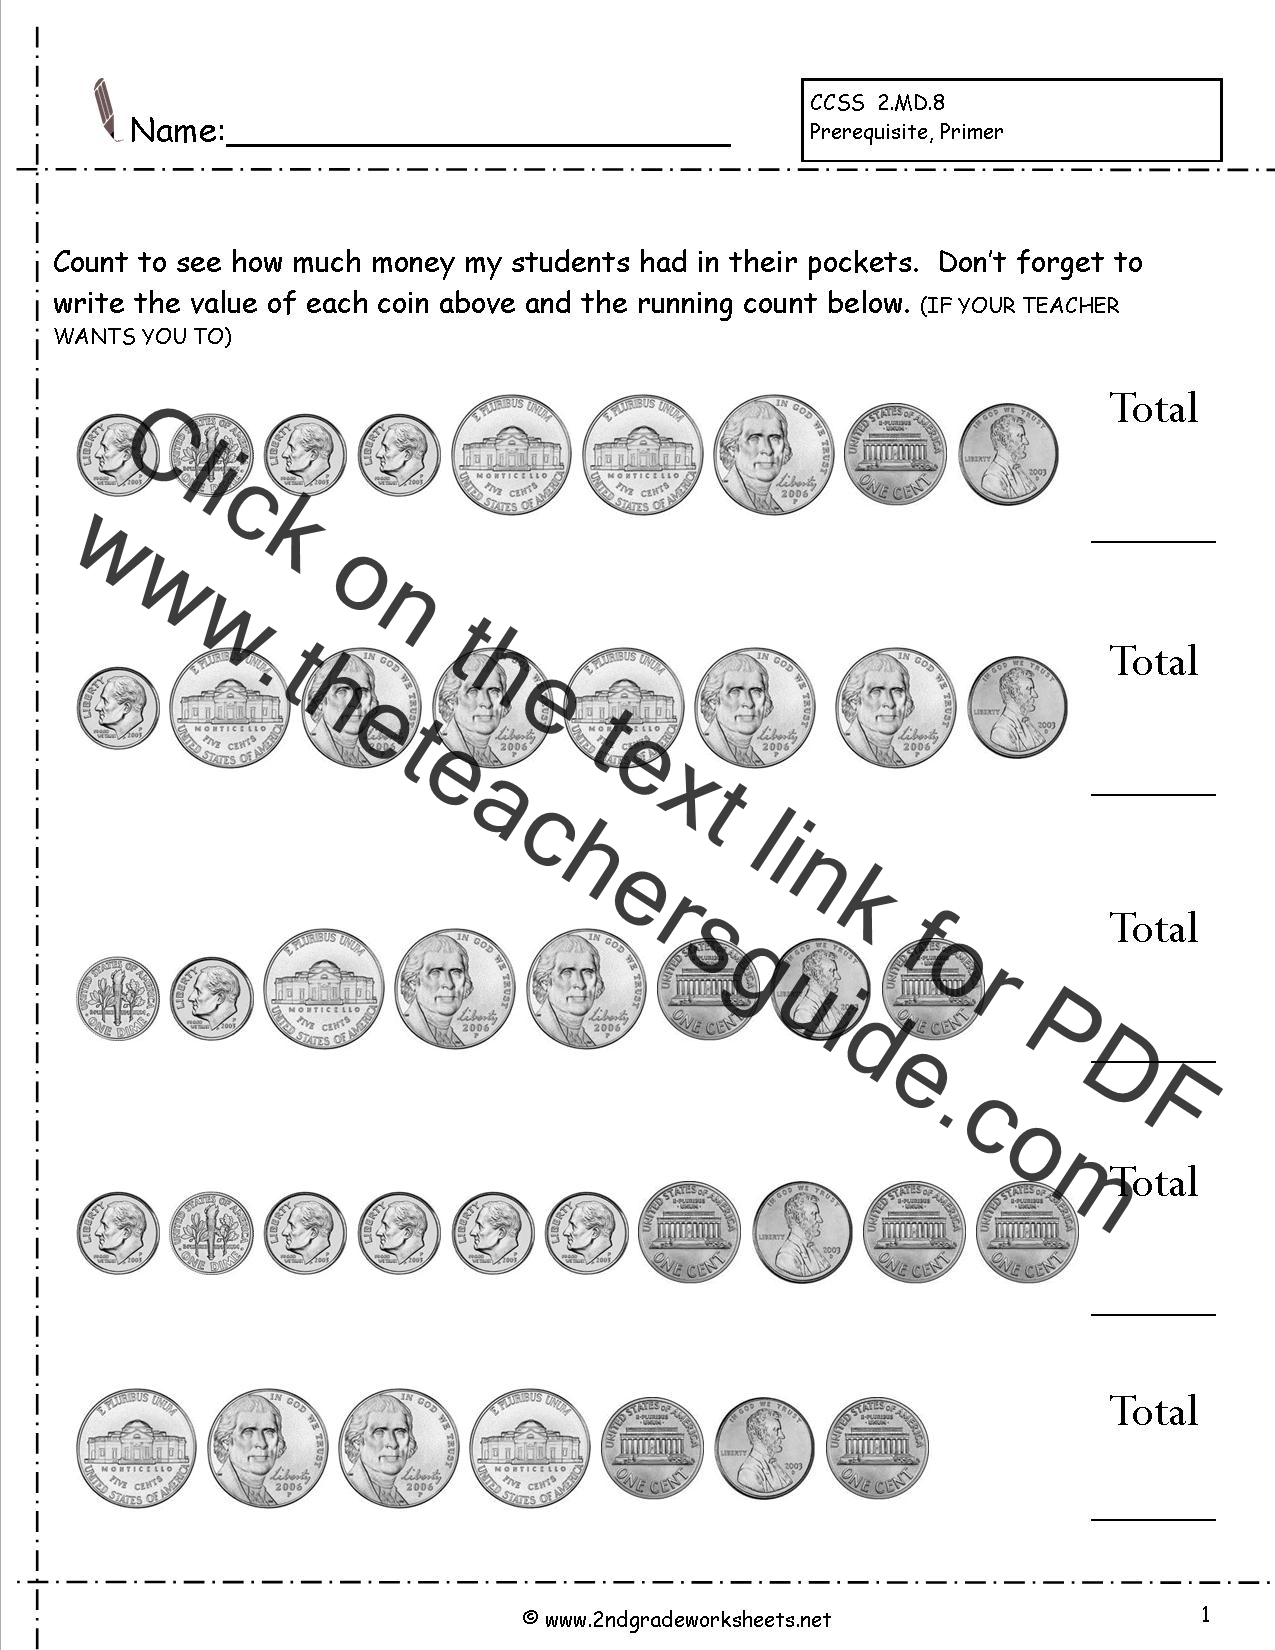 Worksheets Coin Worksheet counting coins and money worksheets printouts without quarters